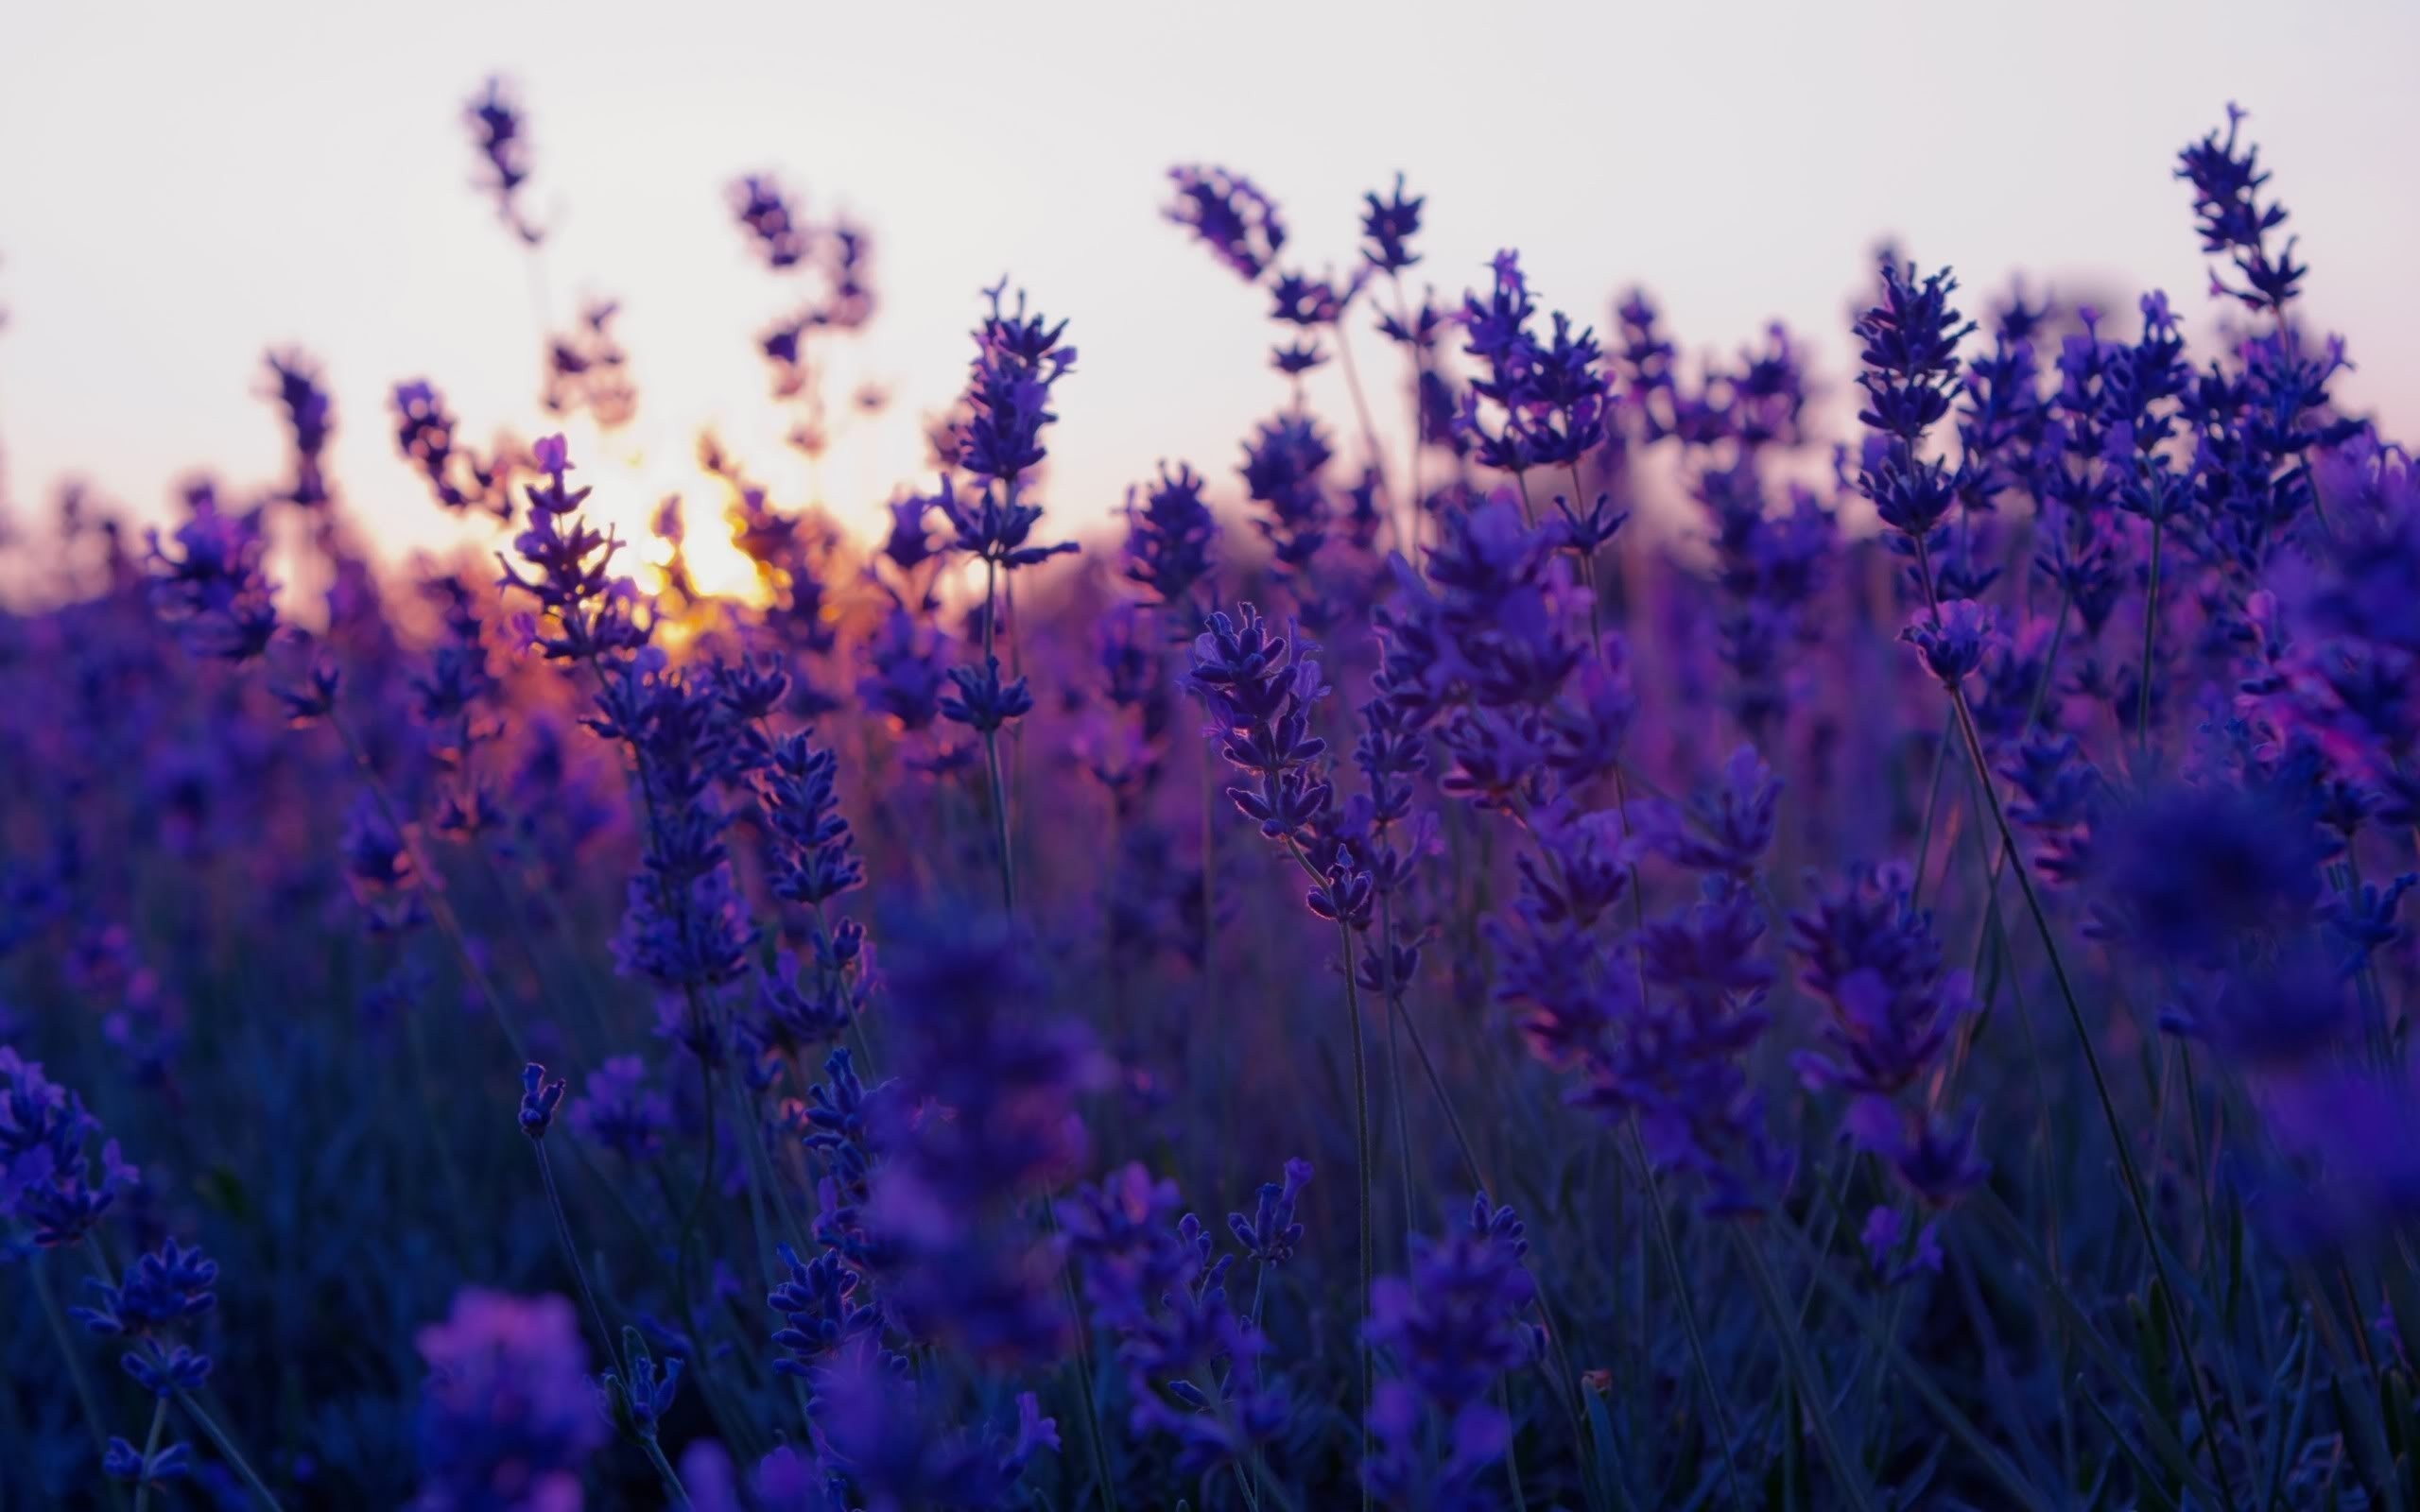 Related Wallpaper Collections - Lavender Flower , HD Wallpaper & Backgrounds